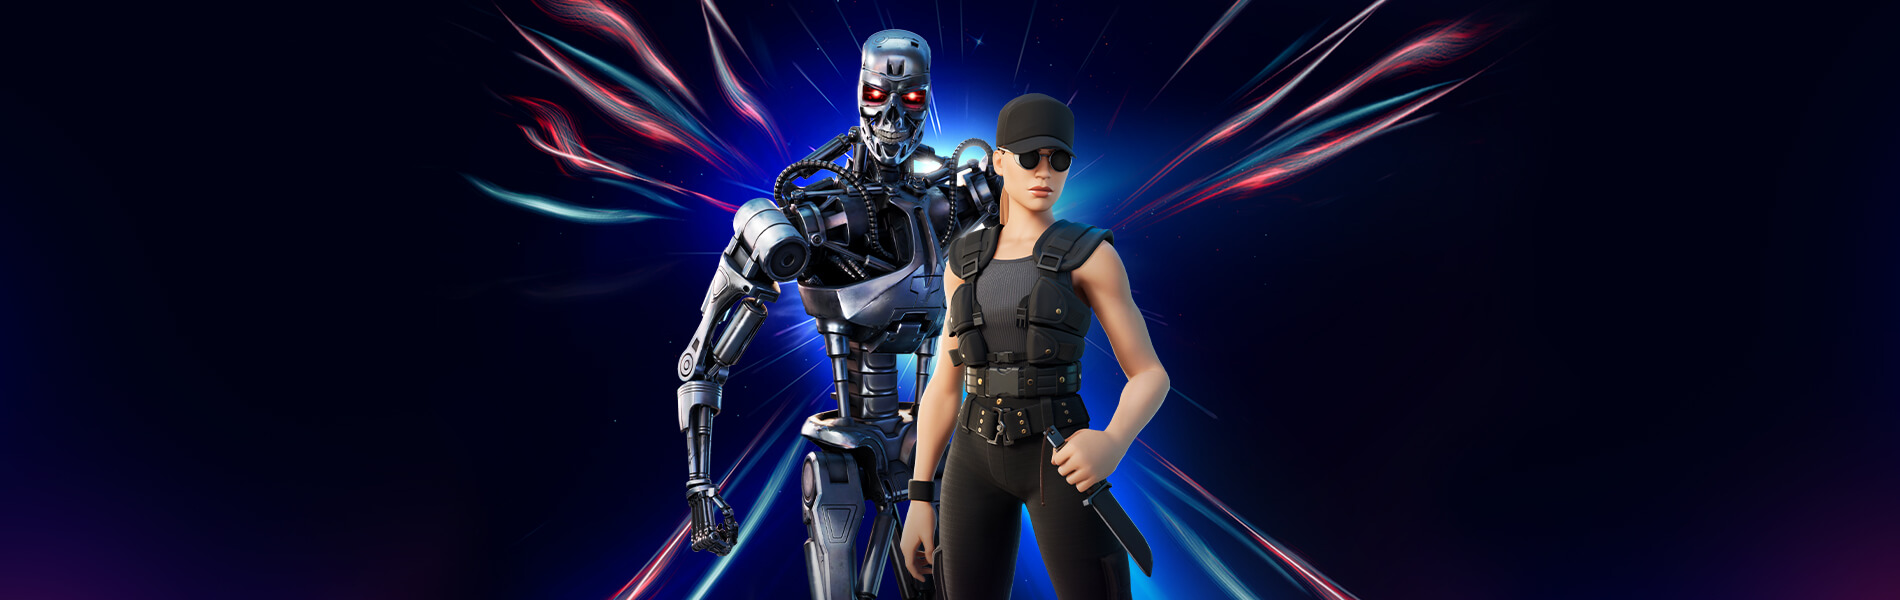 Sarah Connor and the T-800 standing against a starry time travel background in Fortnite